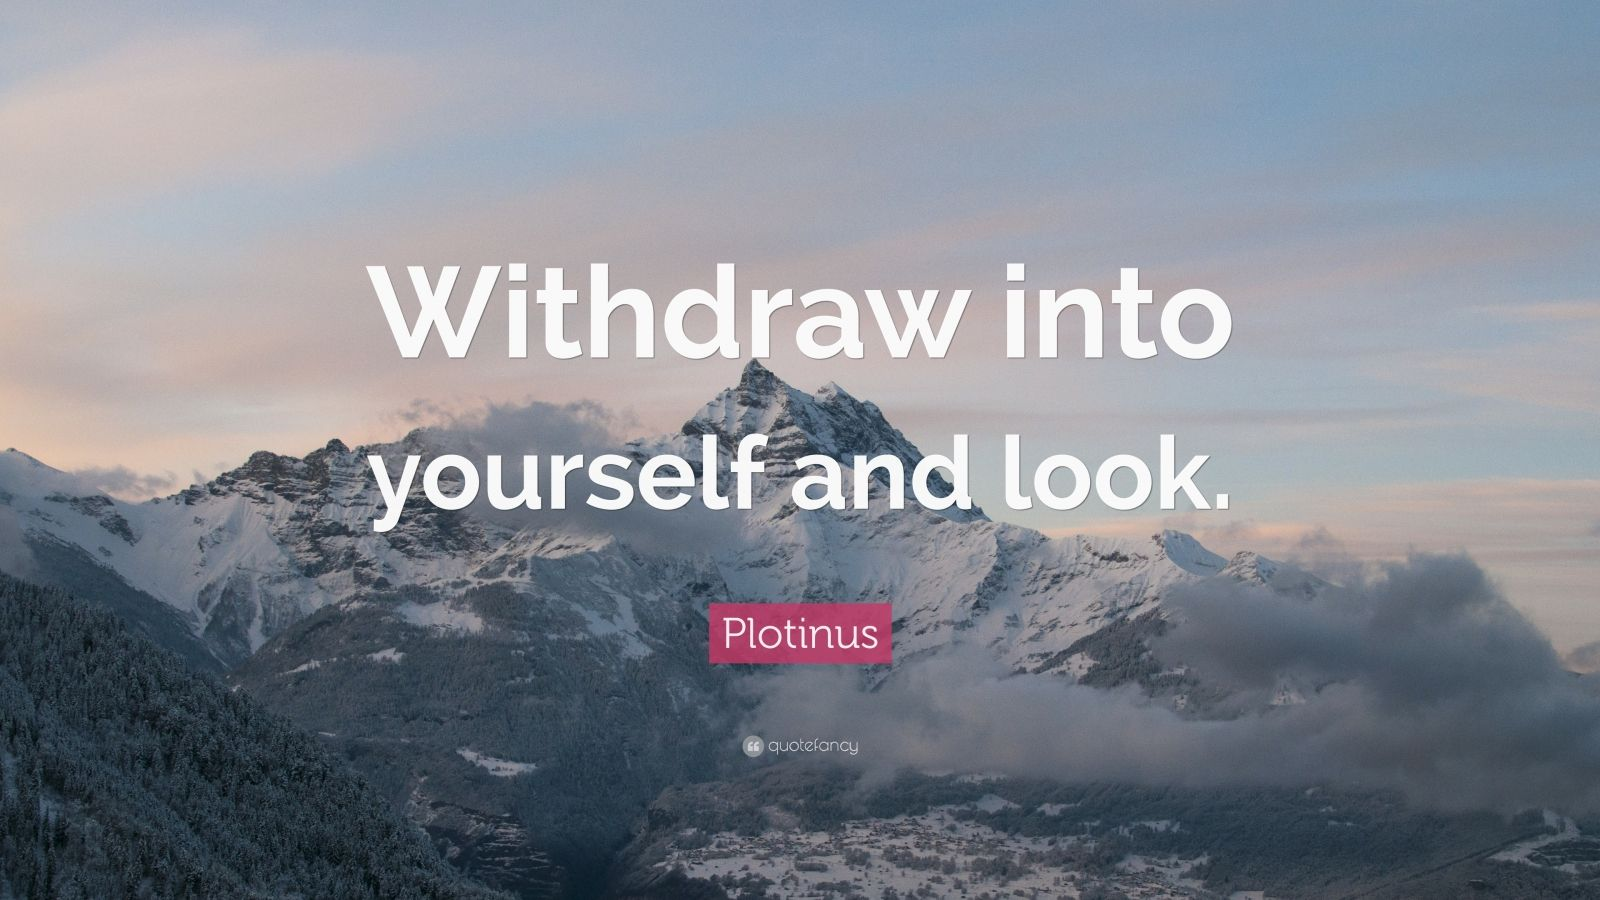 """Plotinus Quote: """"Withdraw into yourself and look."""""""